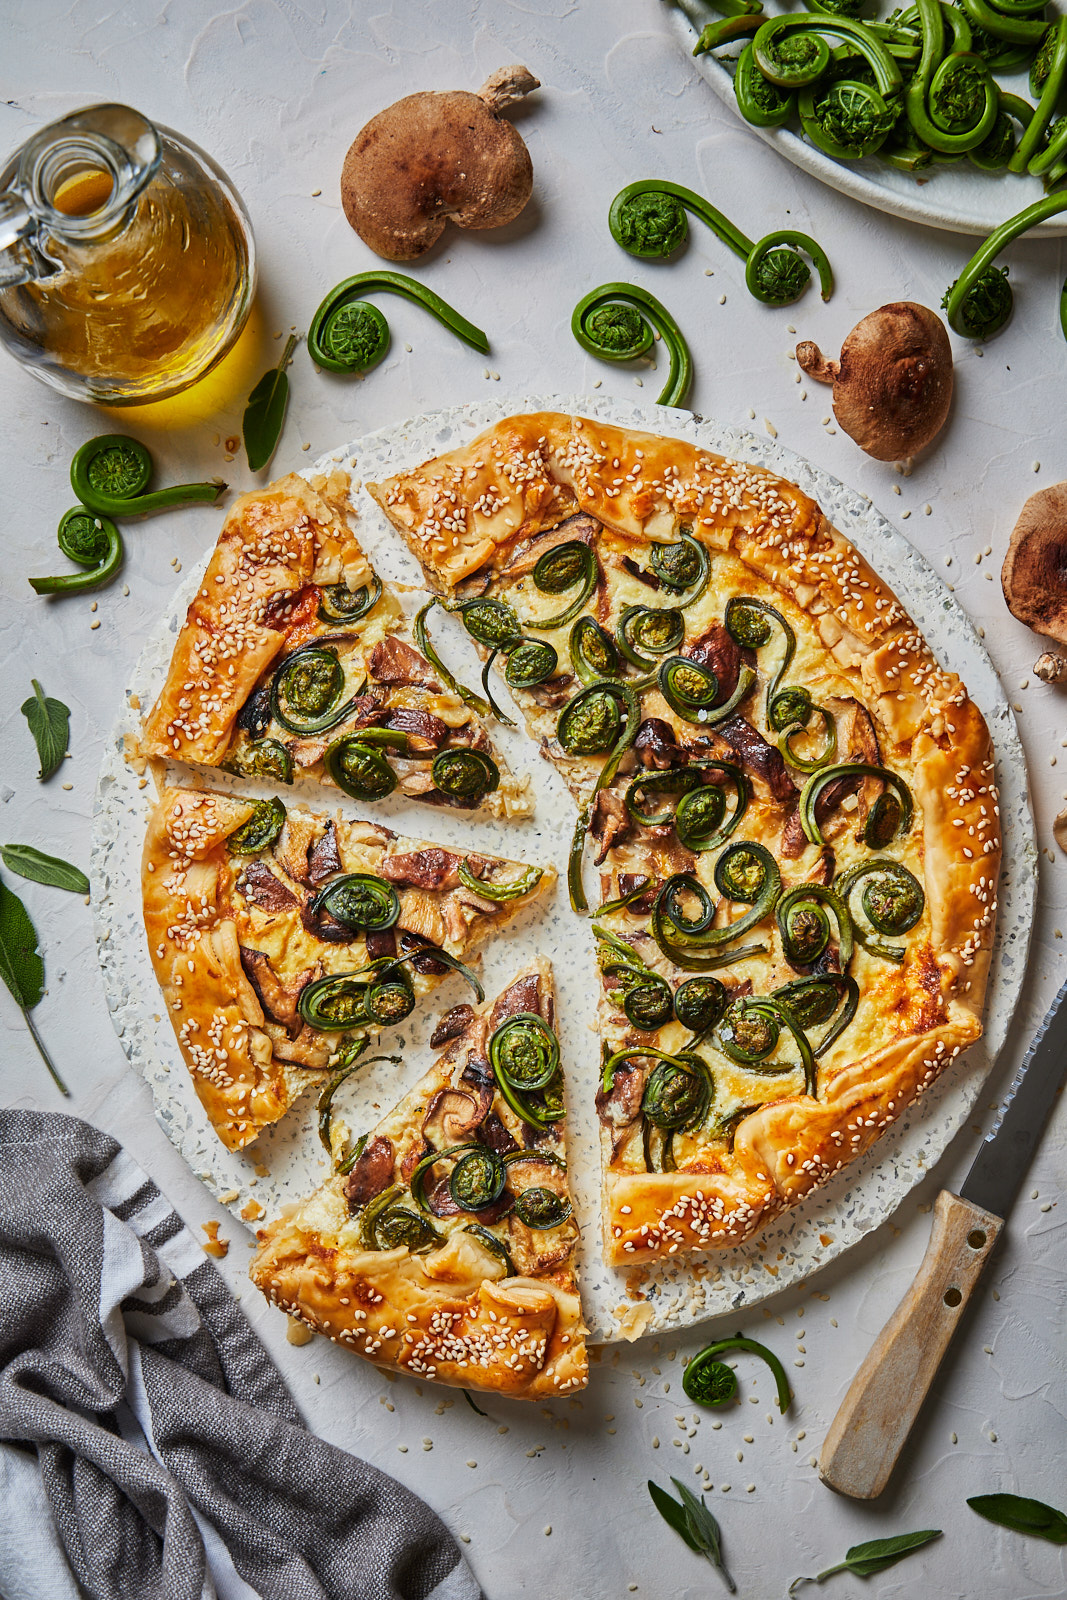 Fiddlehead and Mushroom Galette With Caramelized Onion Ricotta